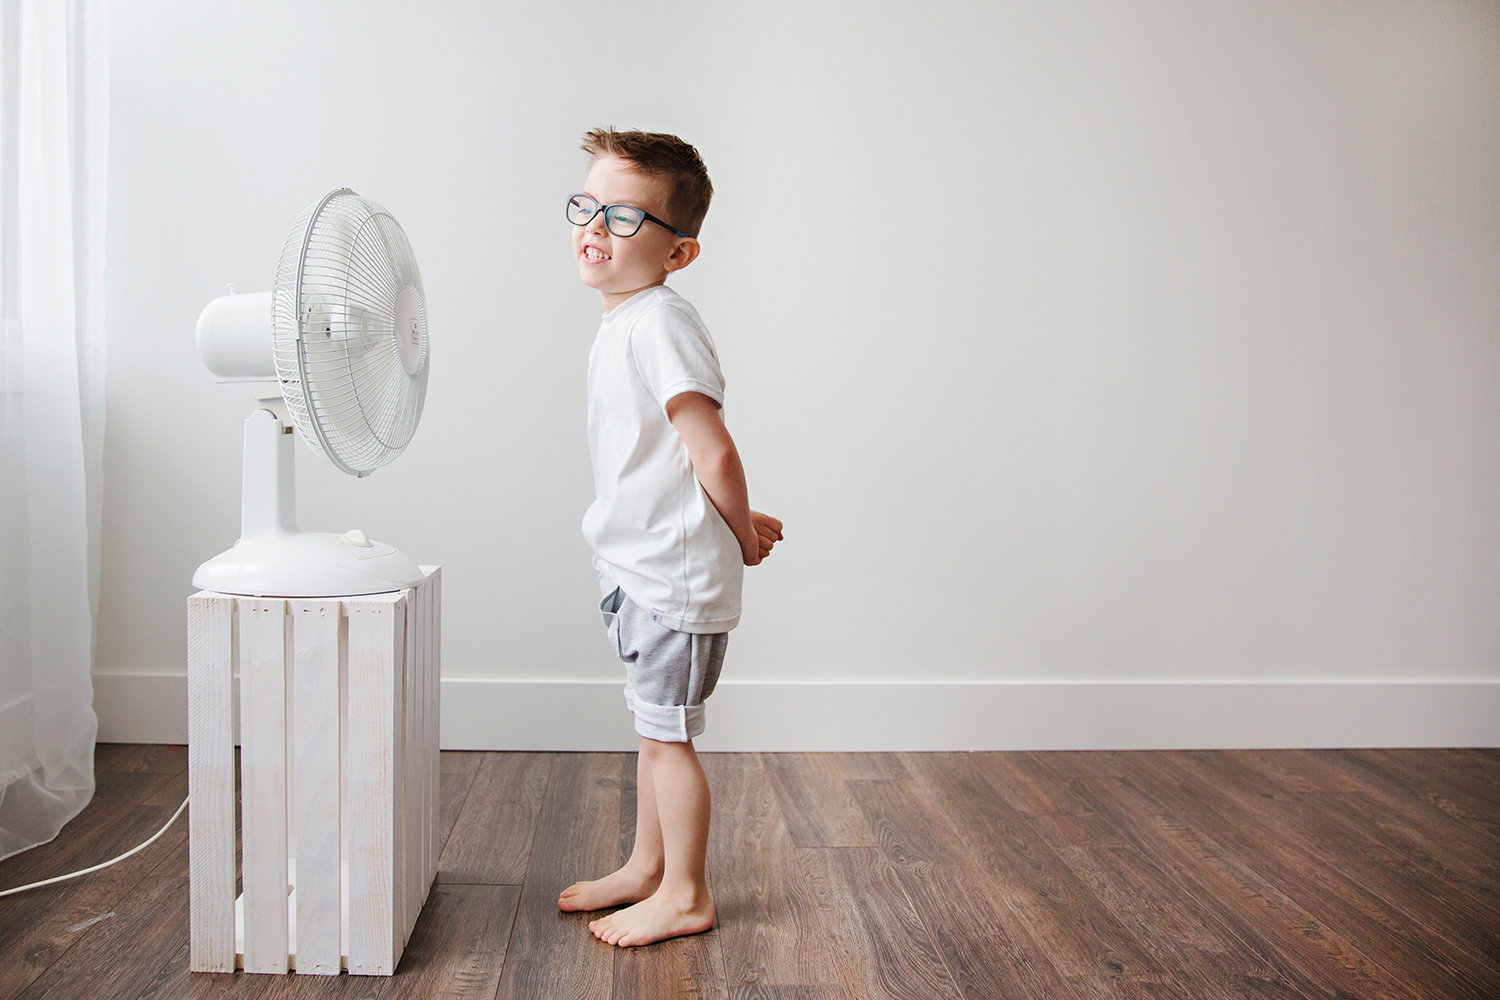 Studio fashion portrait of a boy in front of a fan